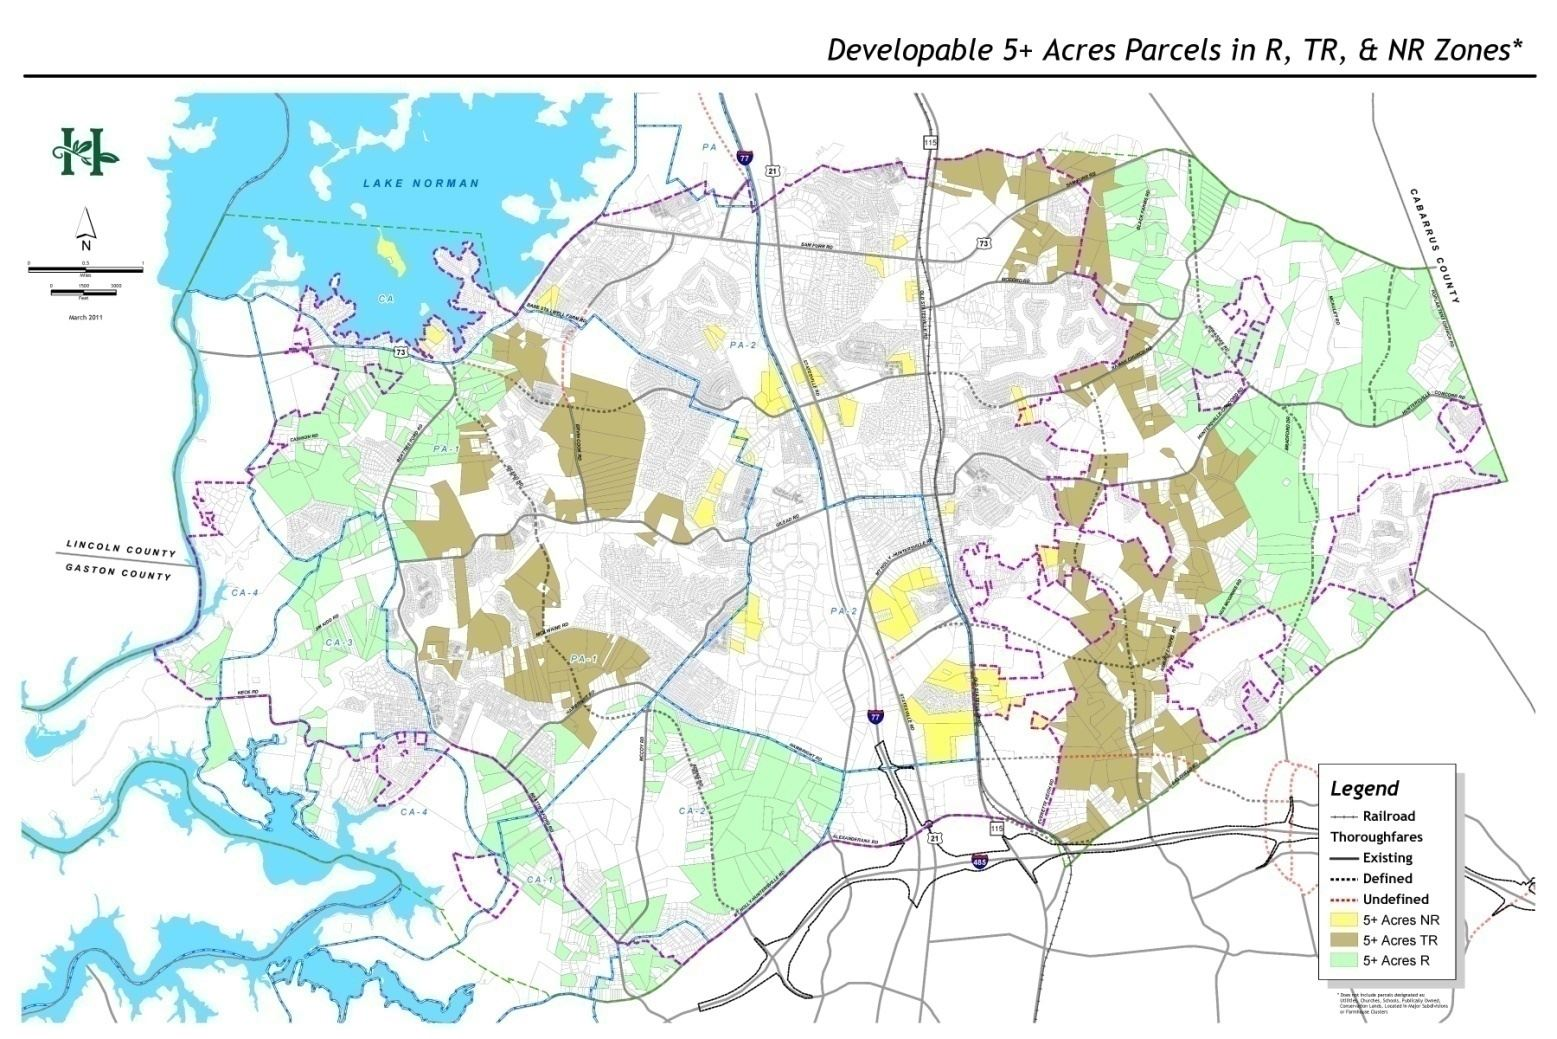 Map H-4 Land Available for Residential Development